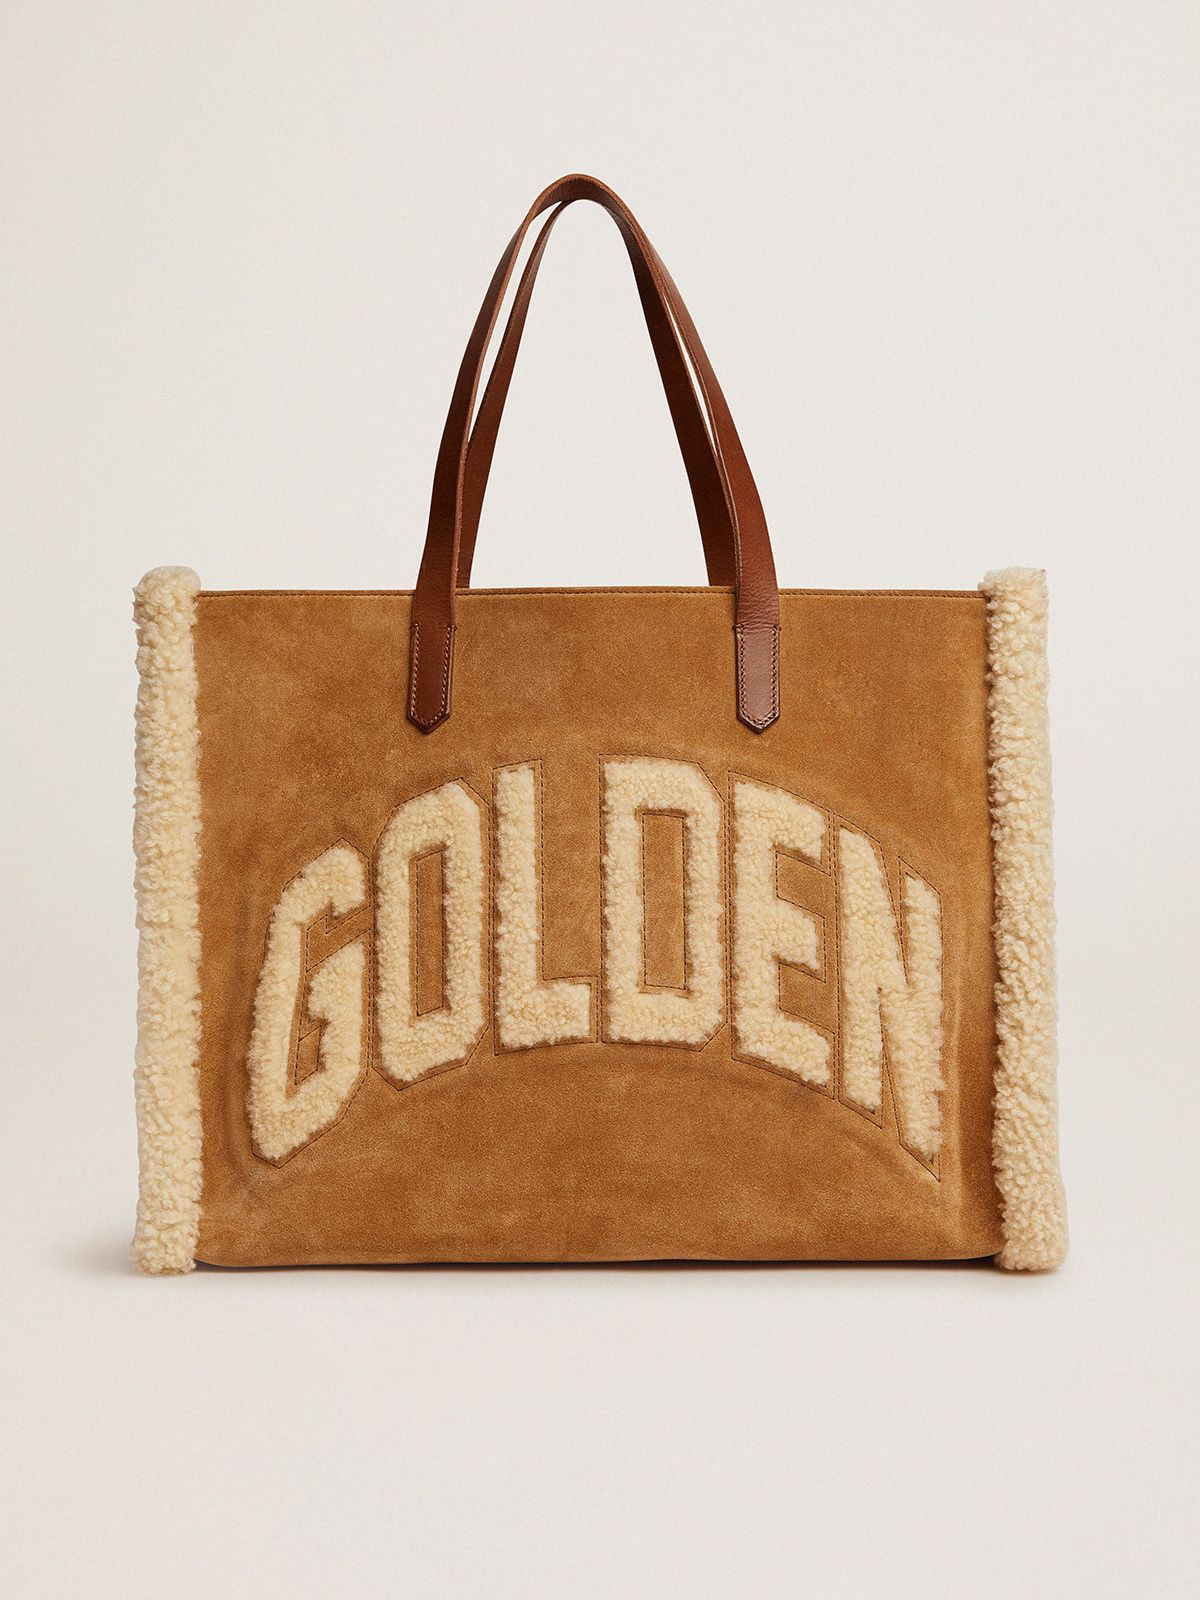 East-West California Bag in suede leather with shearling